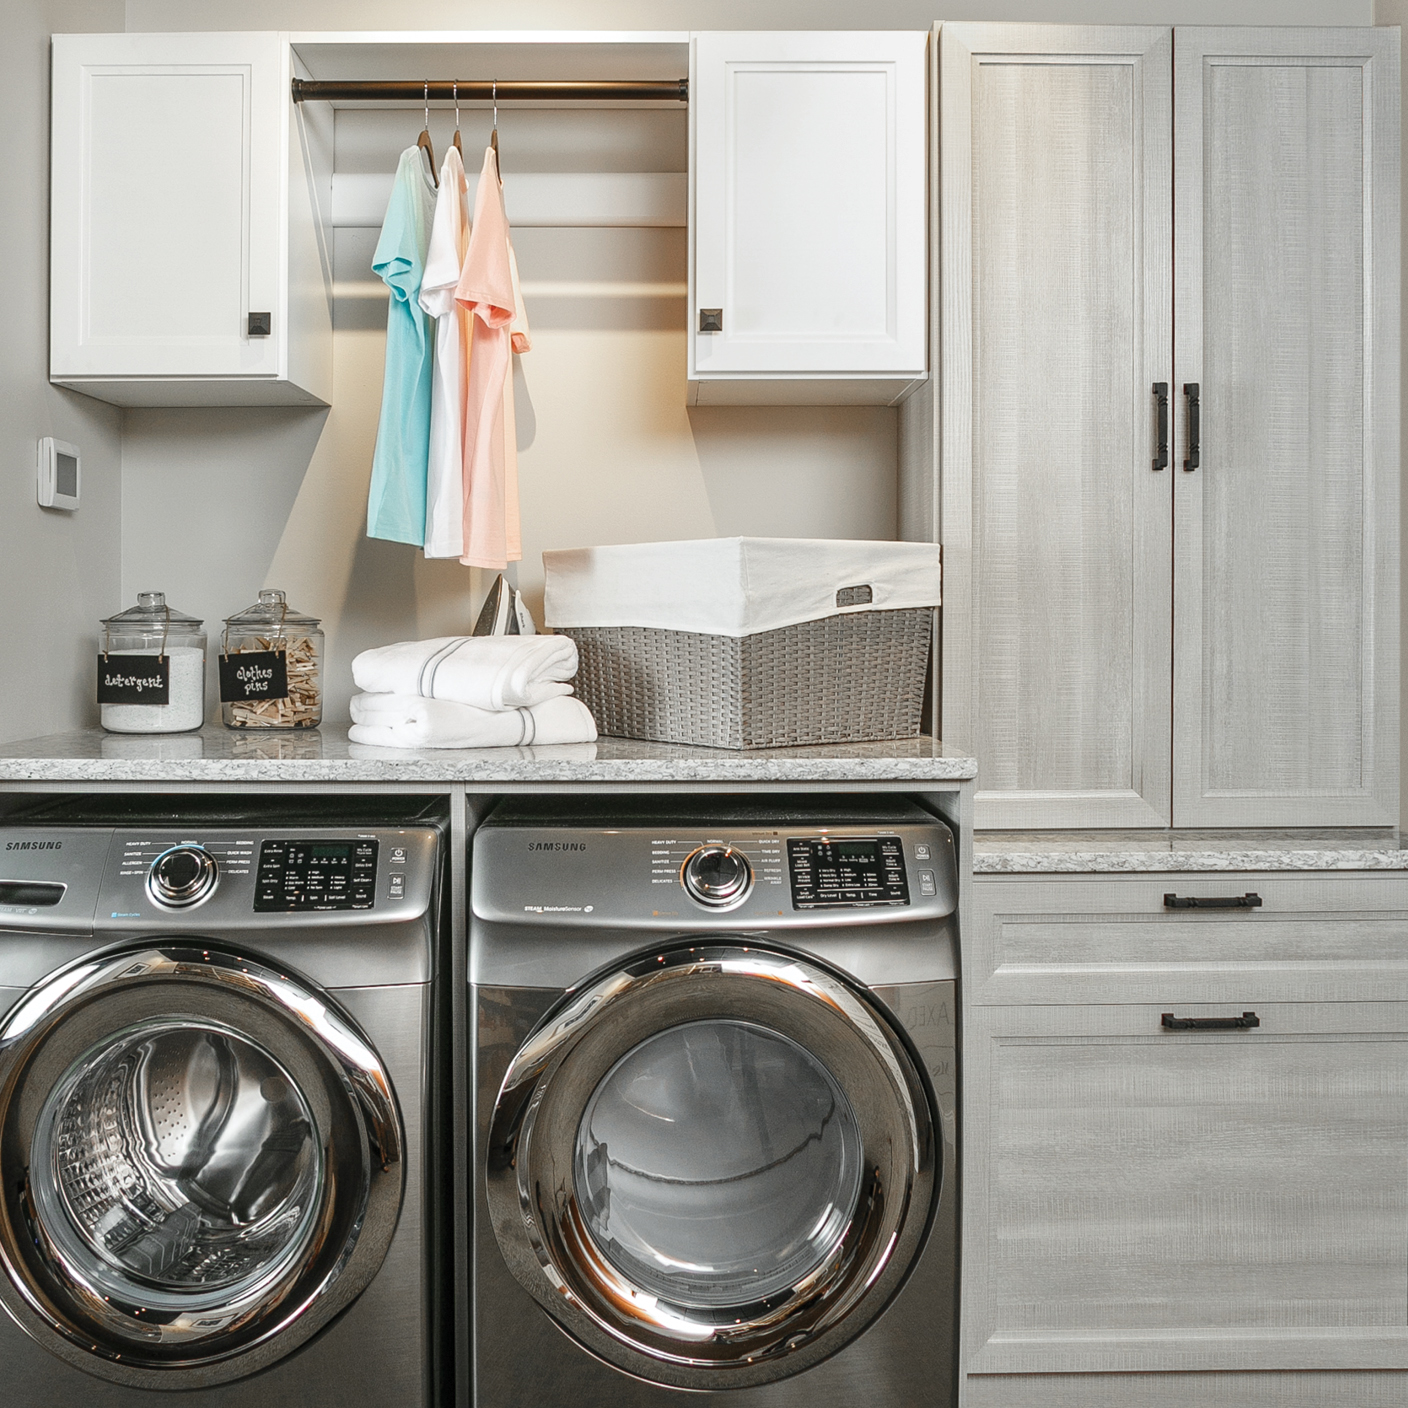 Laundry room storage solutions with hanging rod from Inspired closets